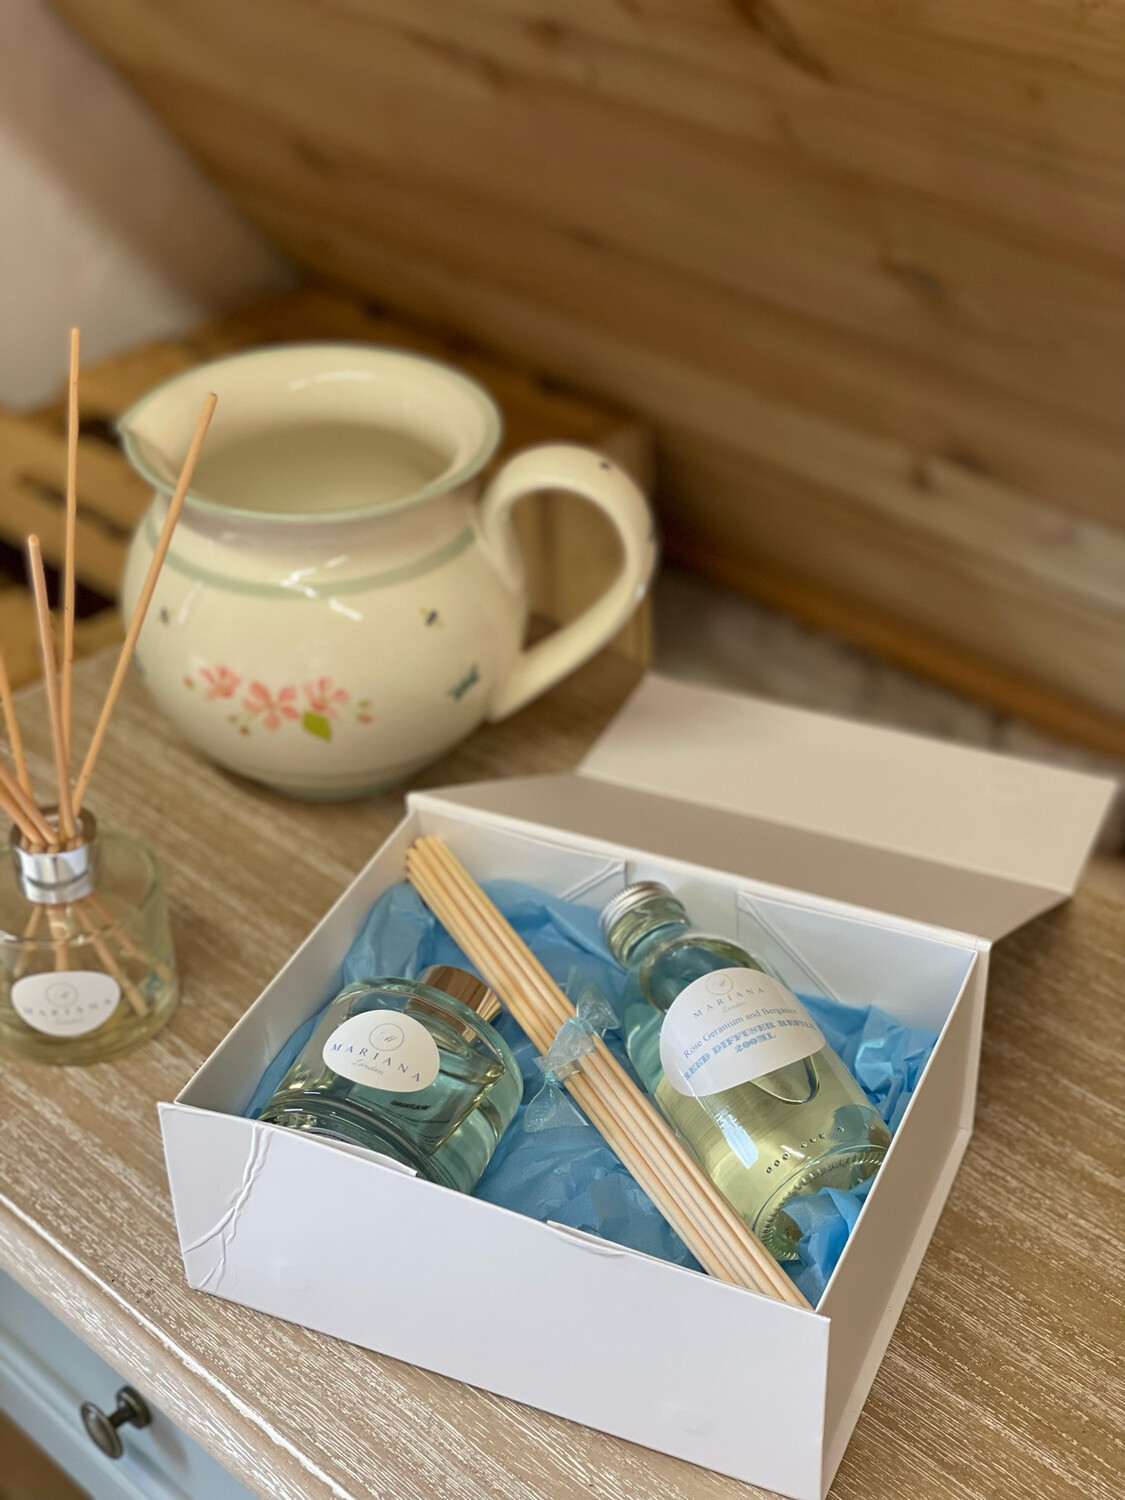 Sweet Orange and Patchouli Reed Diffuser Gift Box